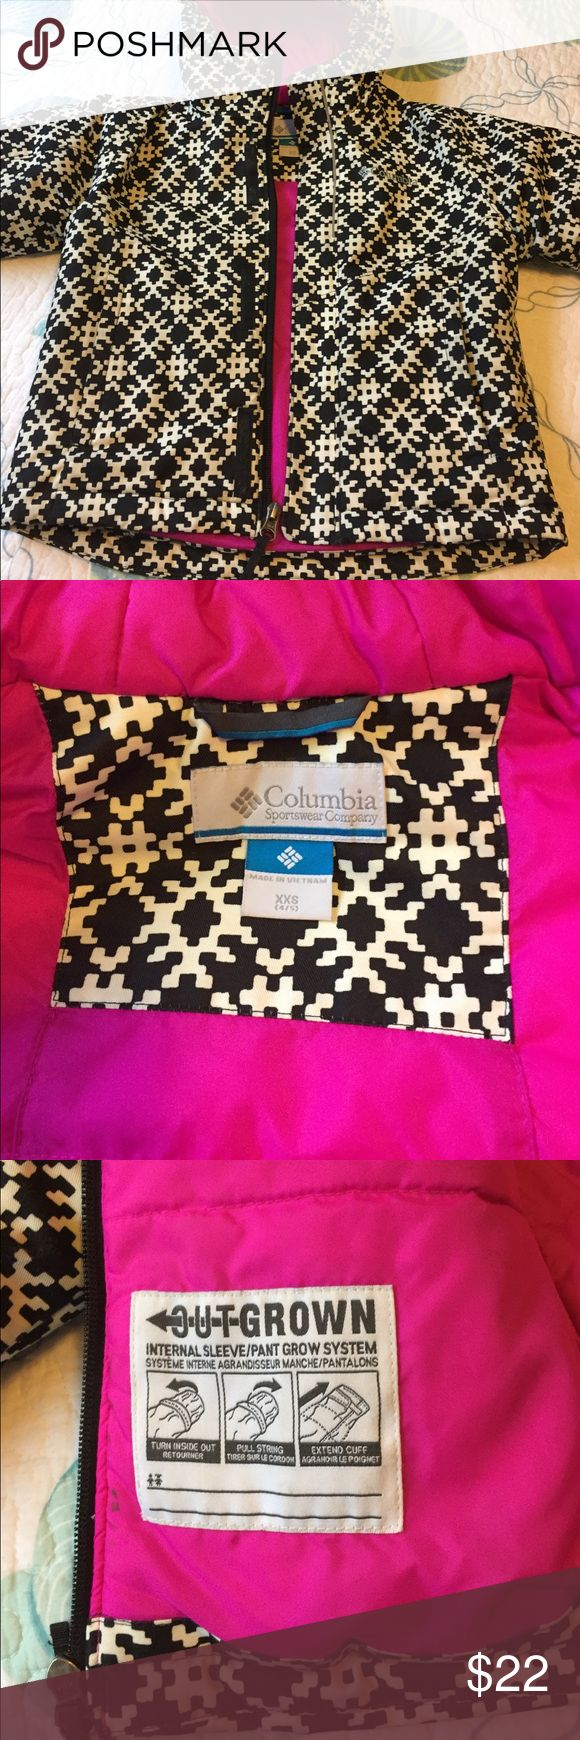 Columbia Little Kids Winter Jacket Columbia Little Kids Winter Jacket.  Size XXS 4/5.  Black & White with pink inside Trim.  Excellent Condition.  Zip up front pockets and adjustable internal sleeve. Columbia Jackets & Coats